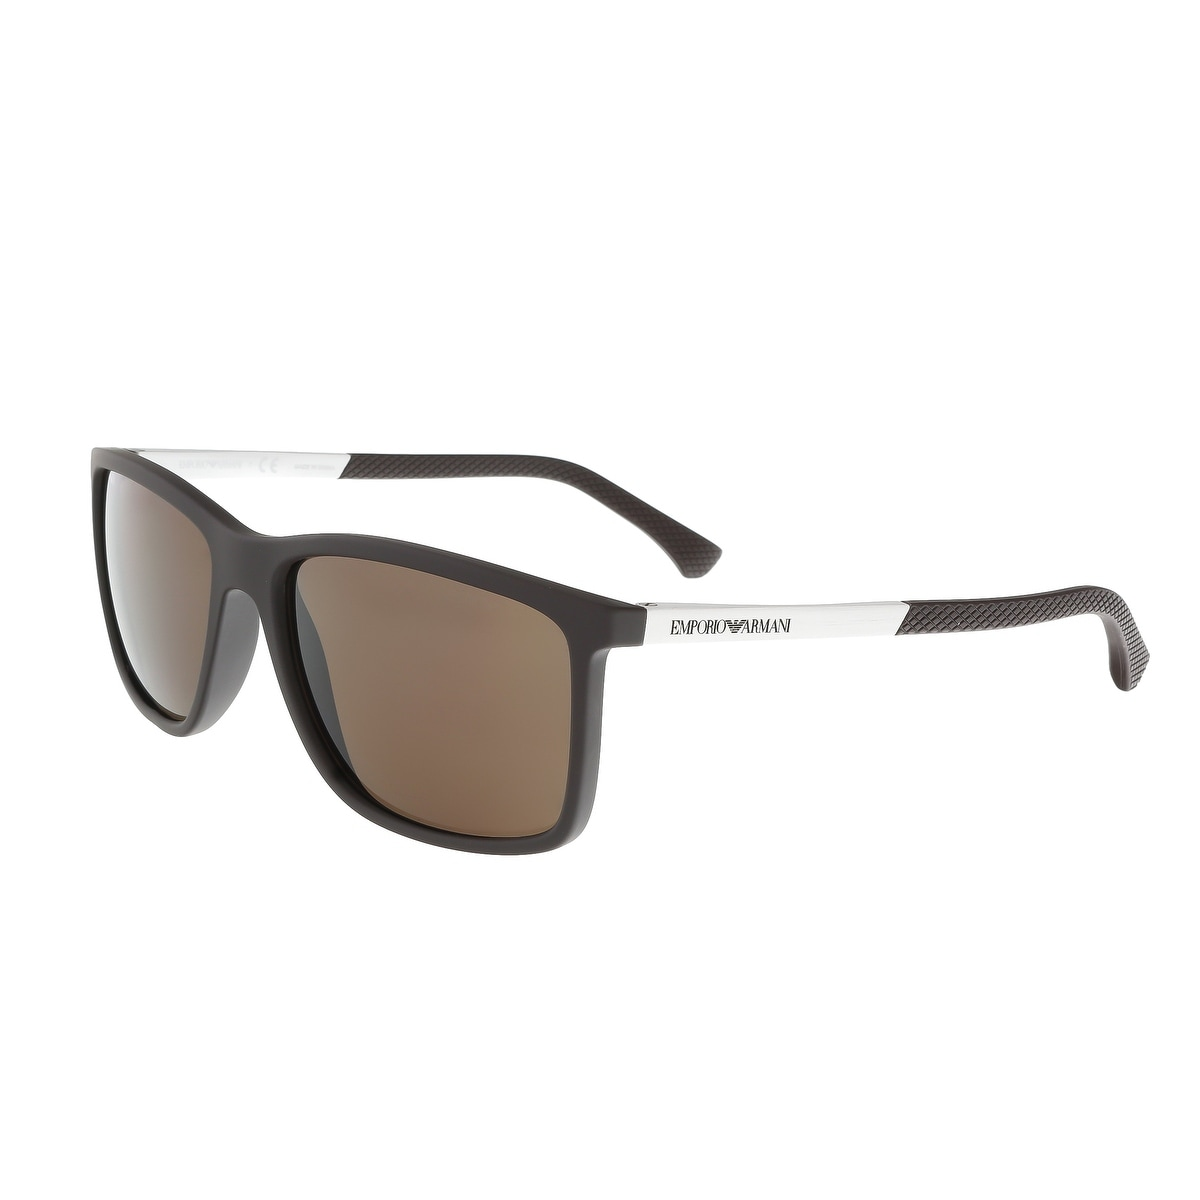 ef8e3f30064f Emporio Armani Sunglasses | Shop our Best Clothing & Shoes Deals Online at  Overstock